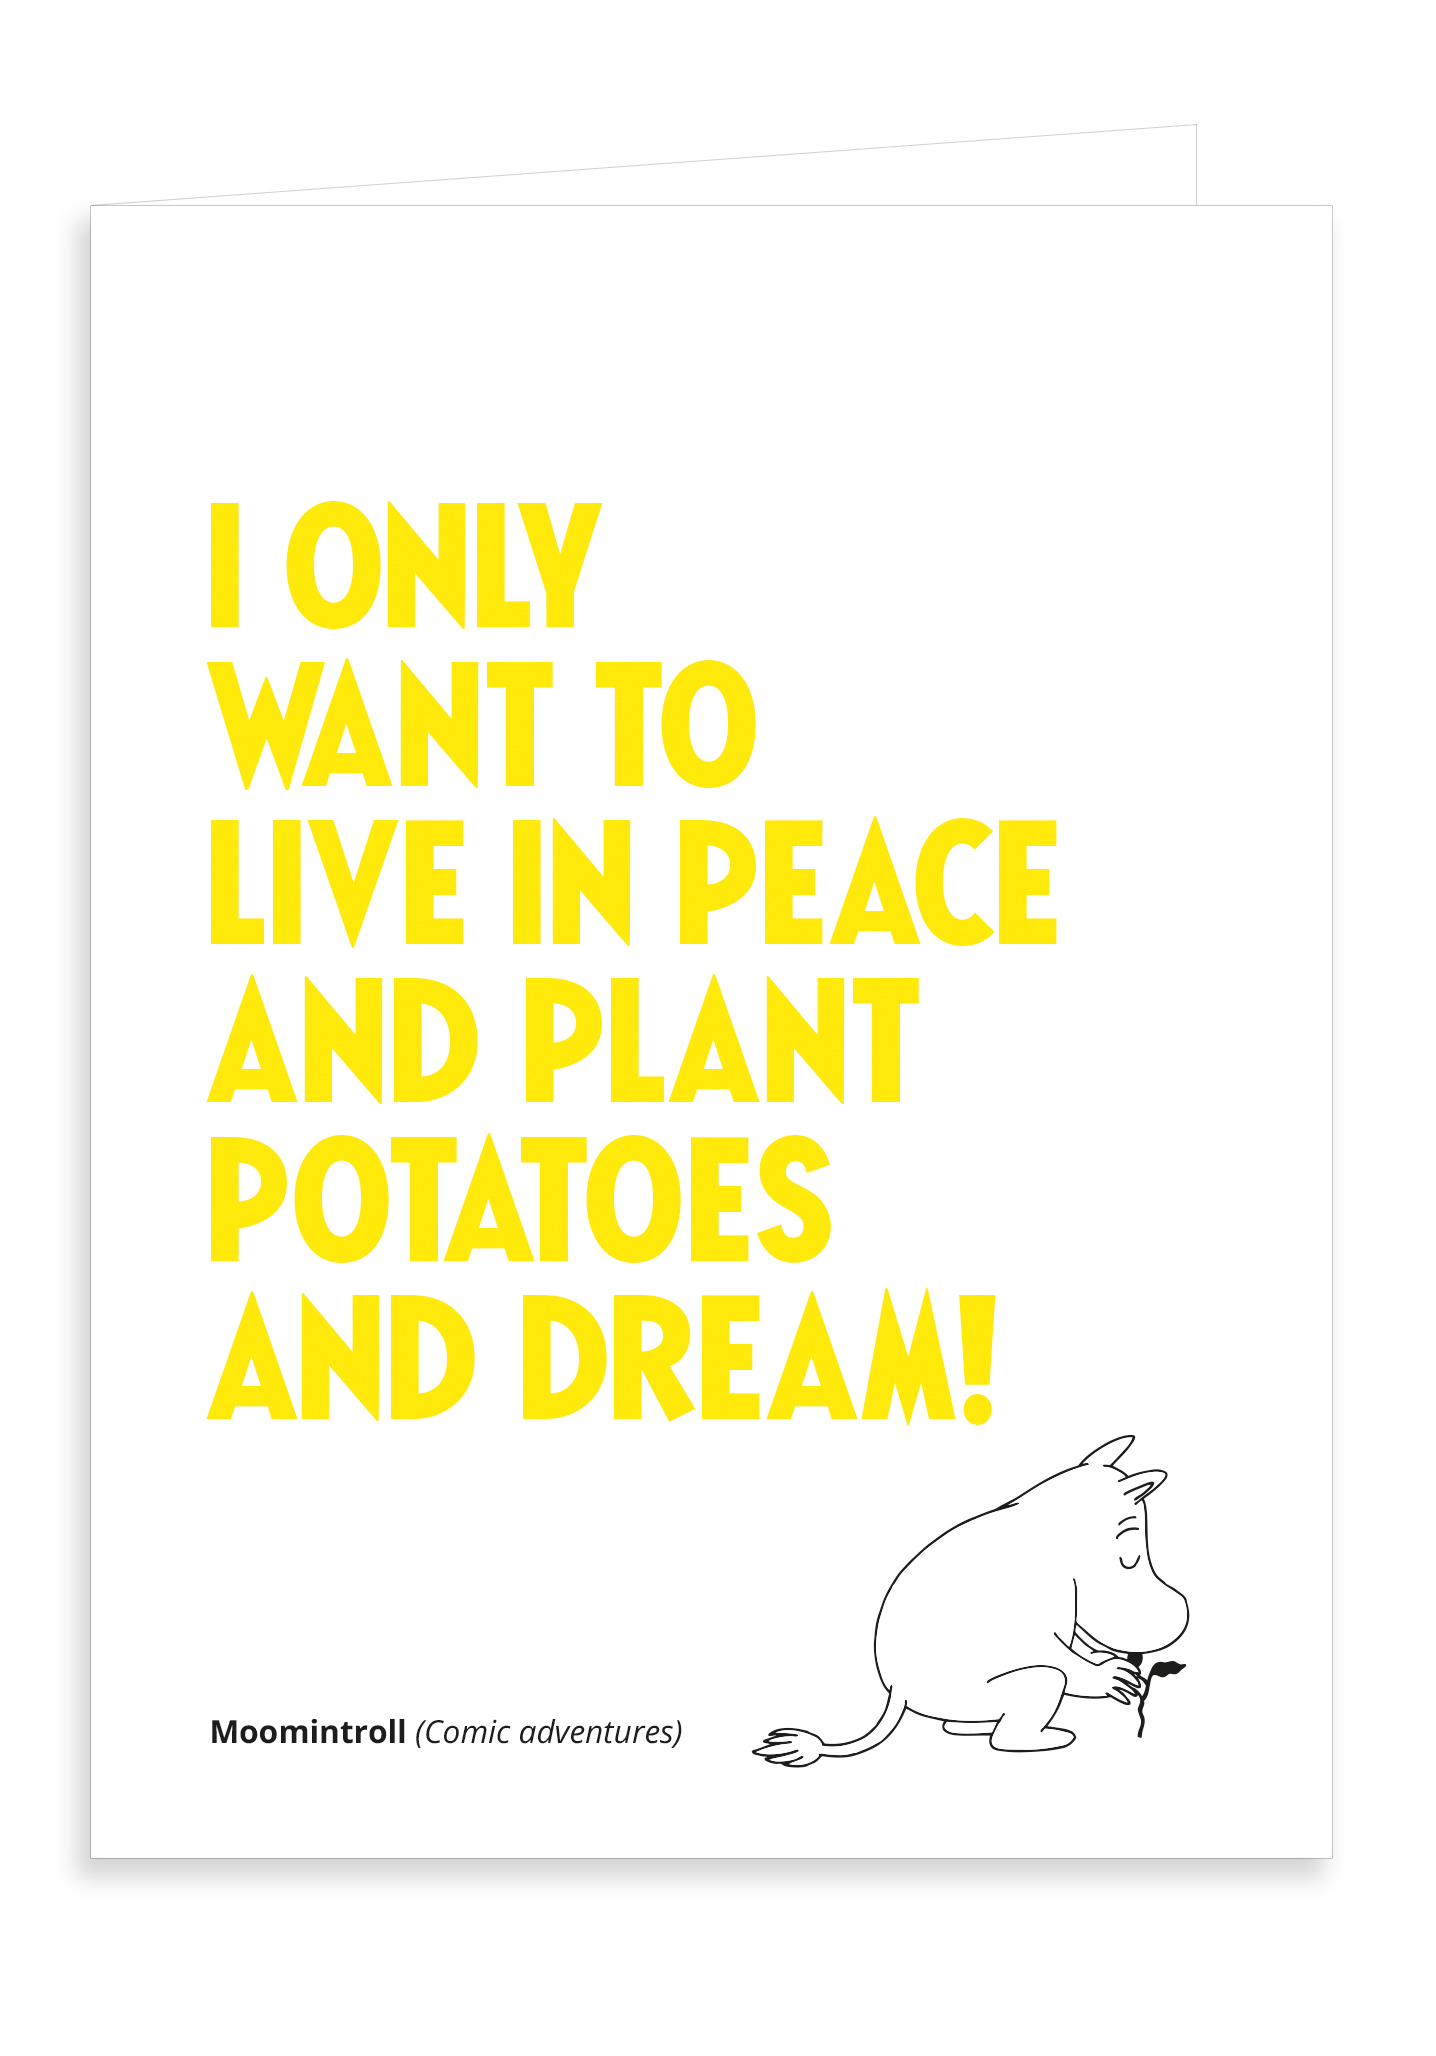 Putinki Letterpress Greeting Card Planting Potatoes